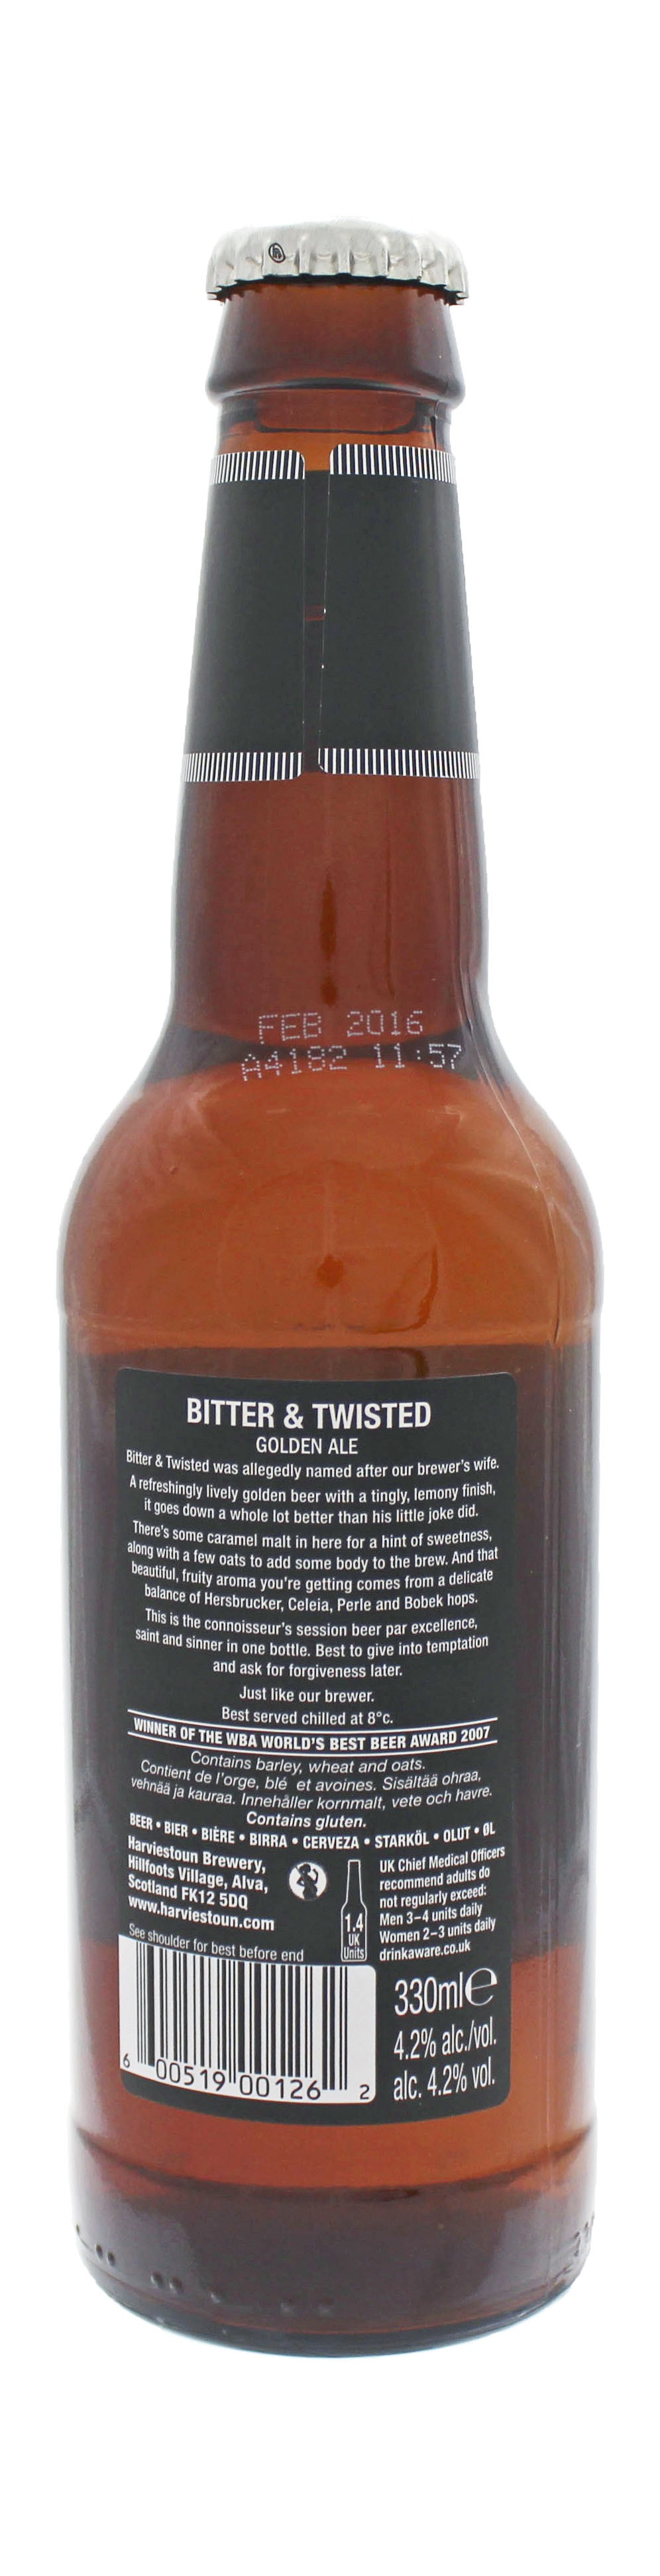 Photo de face de Bitter & Twisted